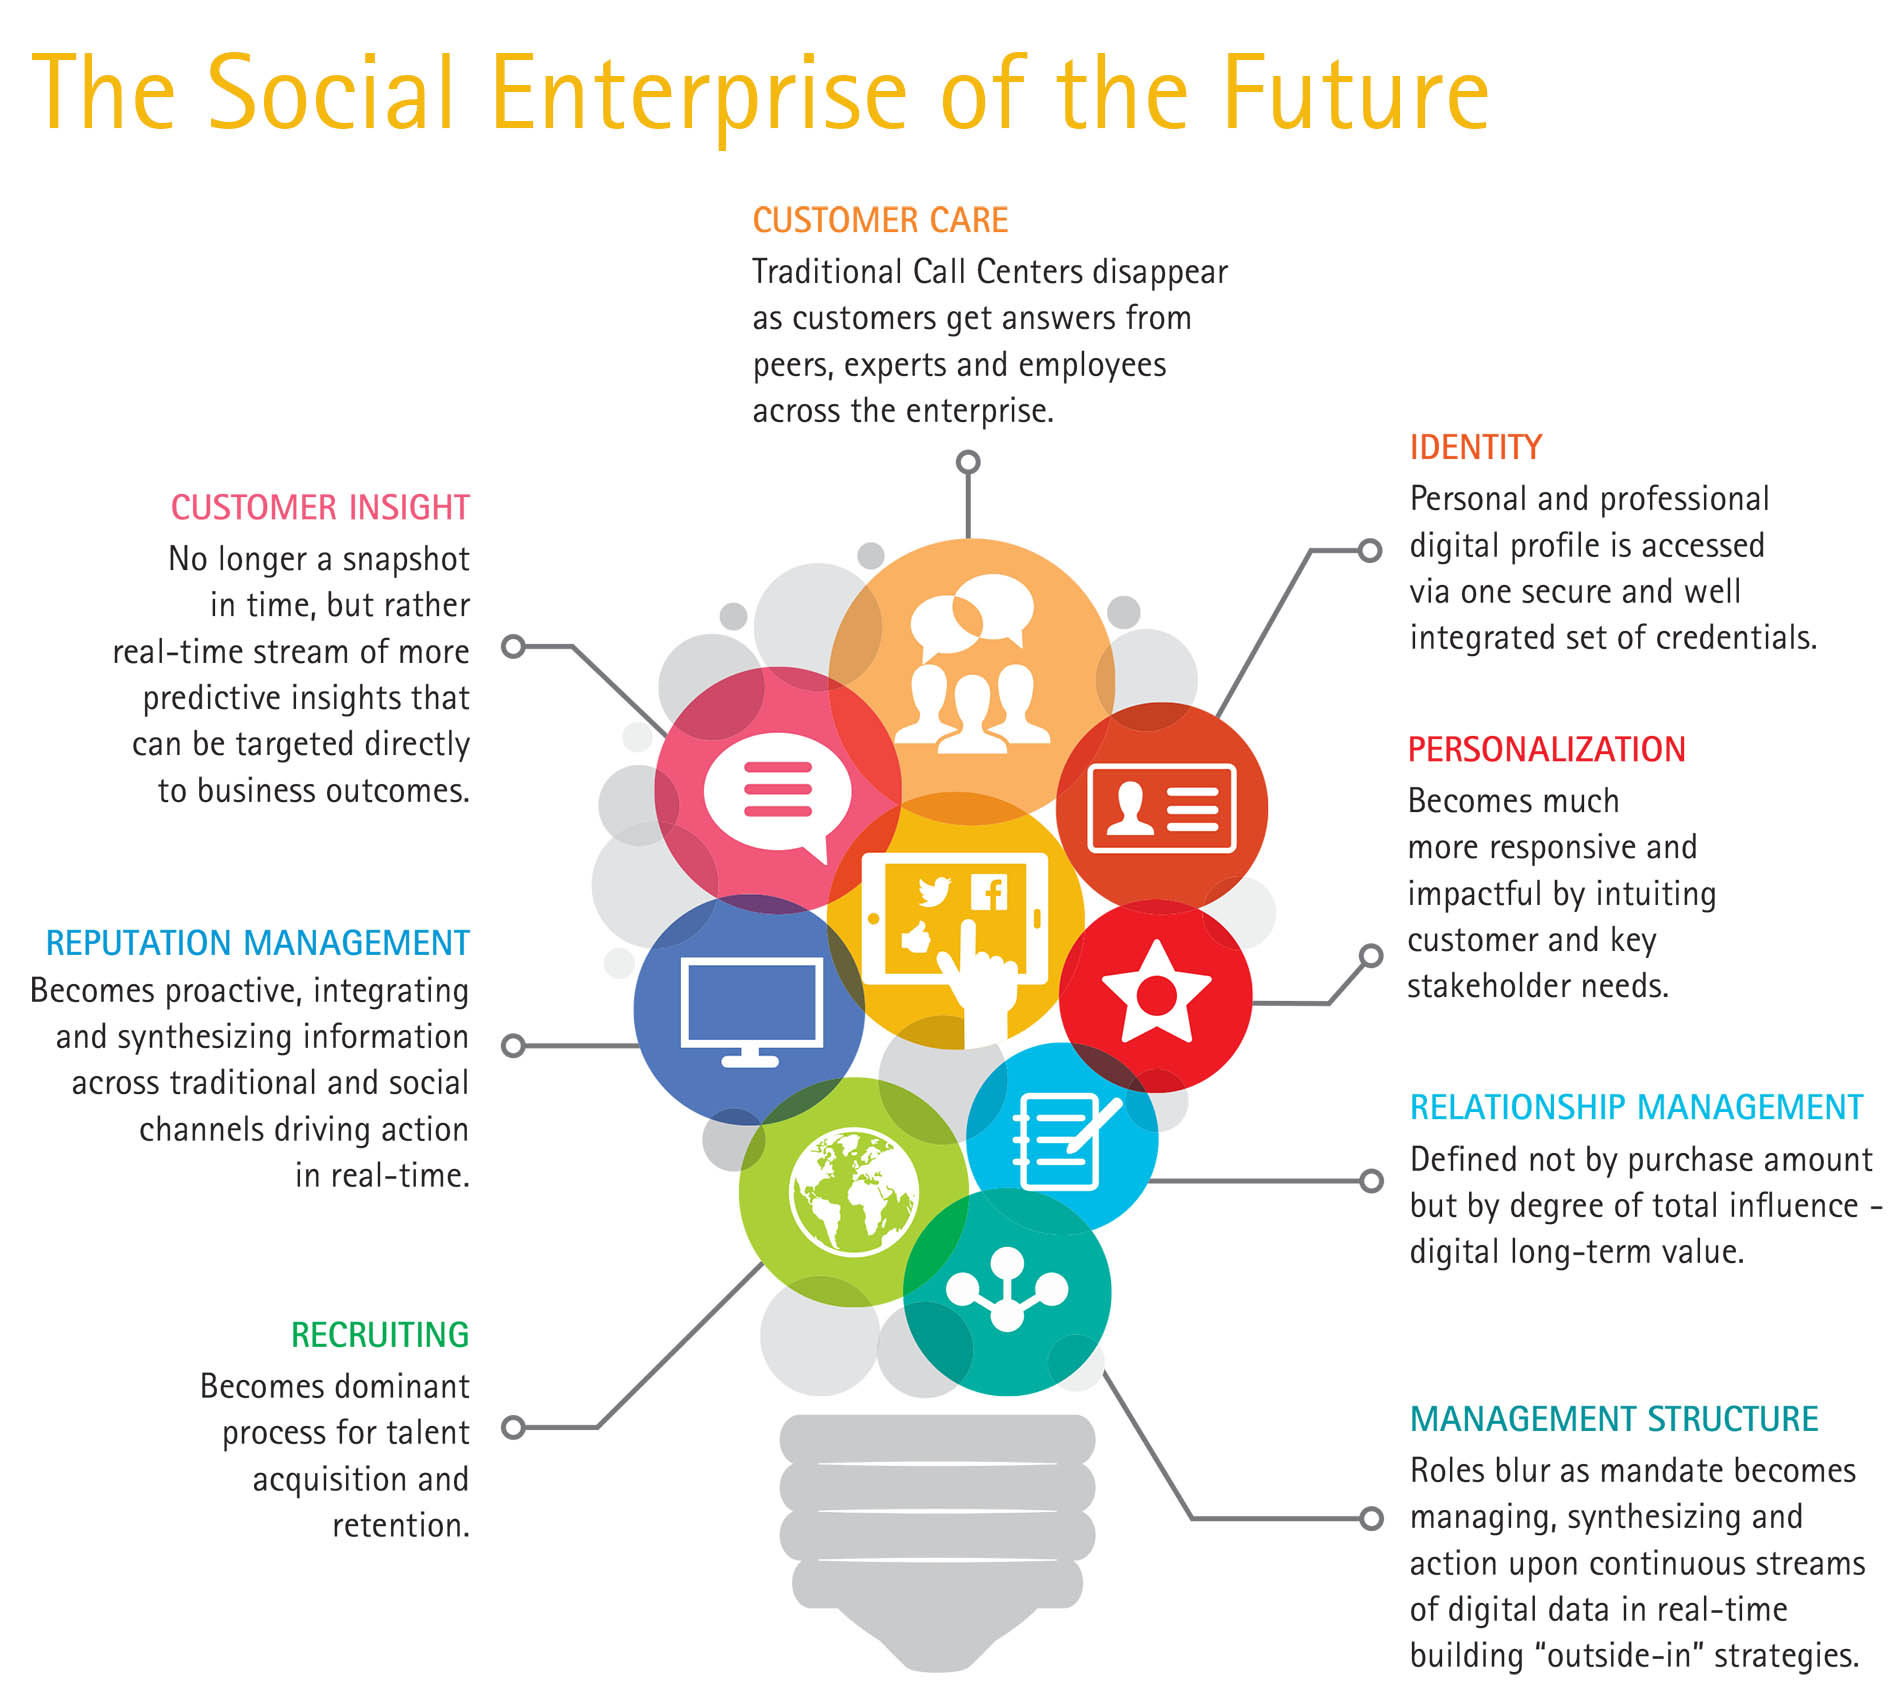 The Social Enterprise of the Future